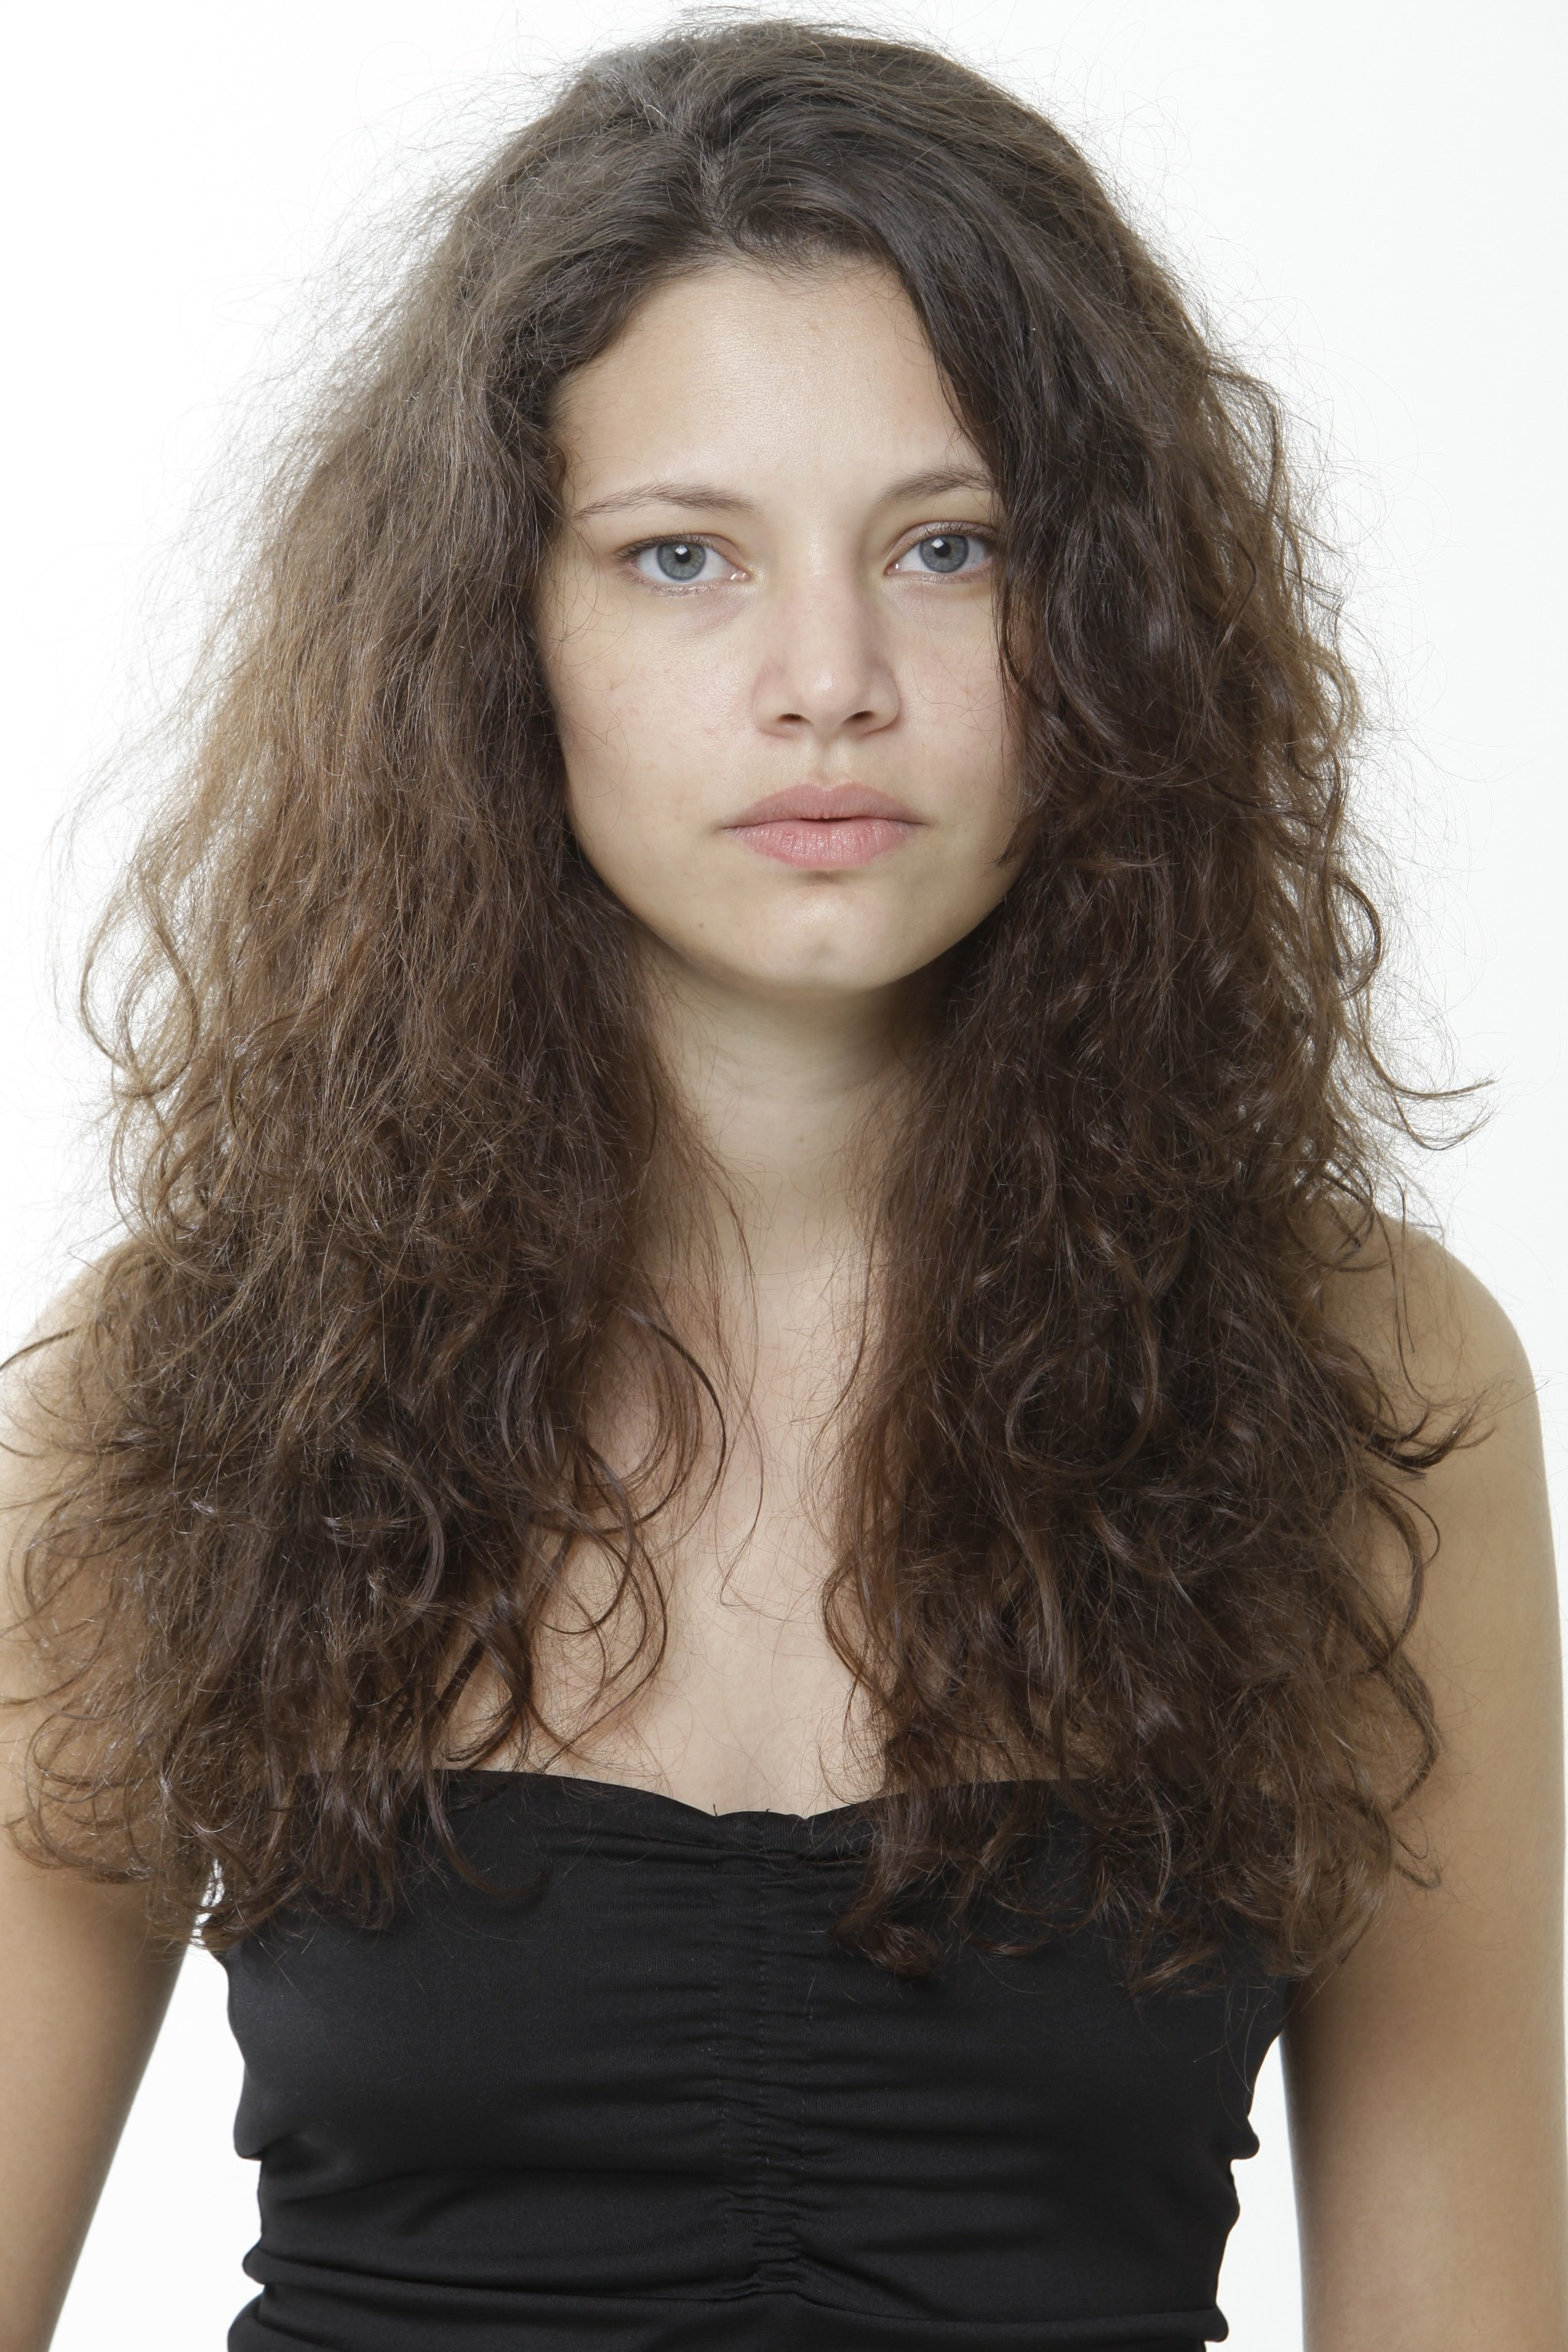 QOD Frizzy Hair Model